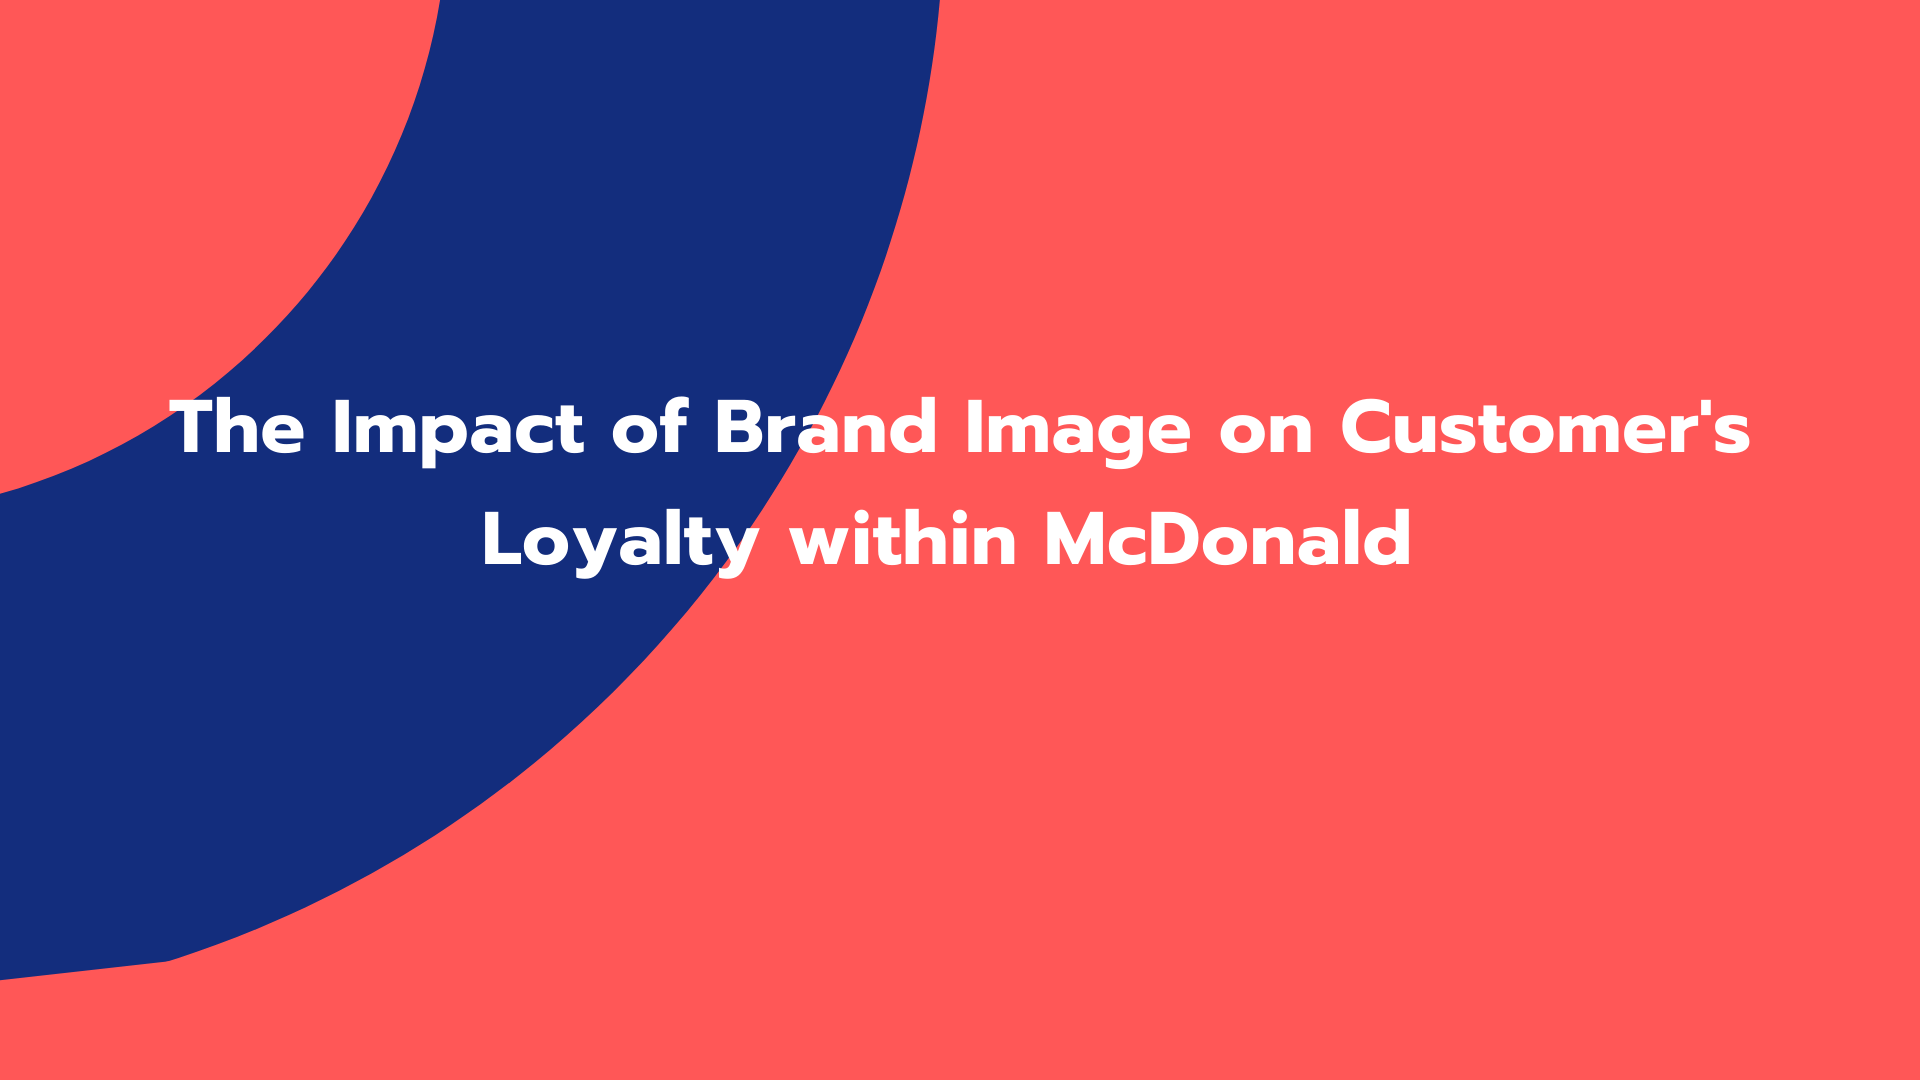 The Impact of Brand Image on Customer's Loyalty within McDonald